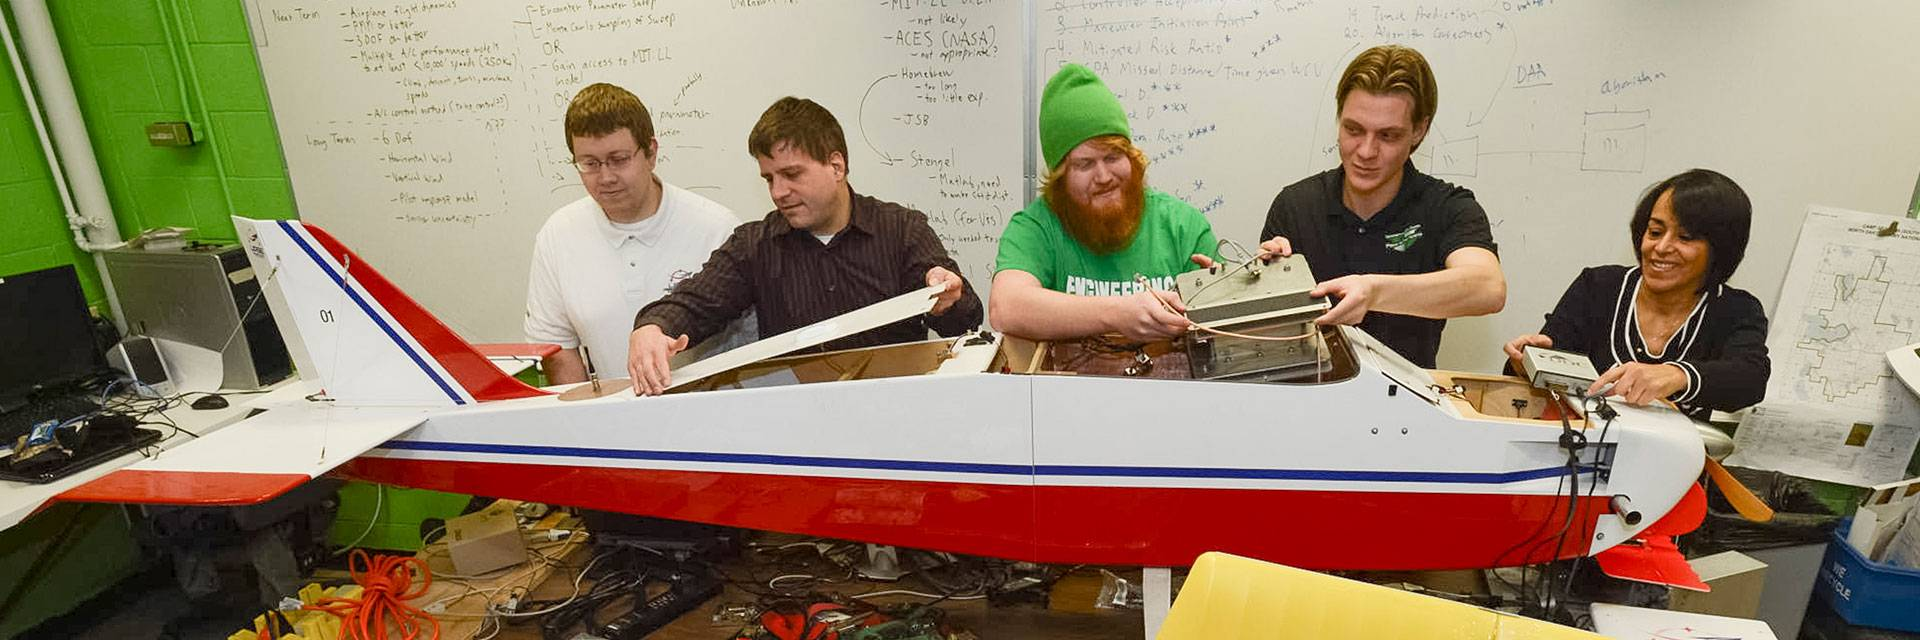 electrical engineering students working on model plane